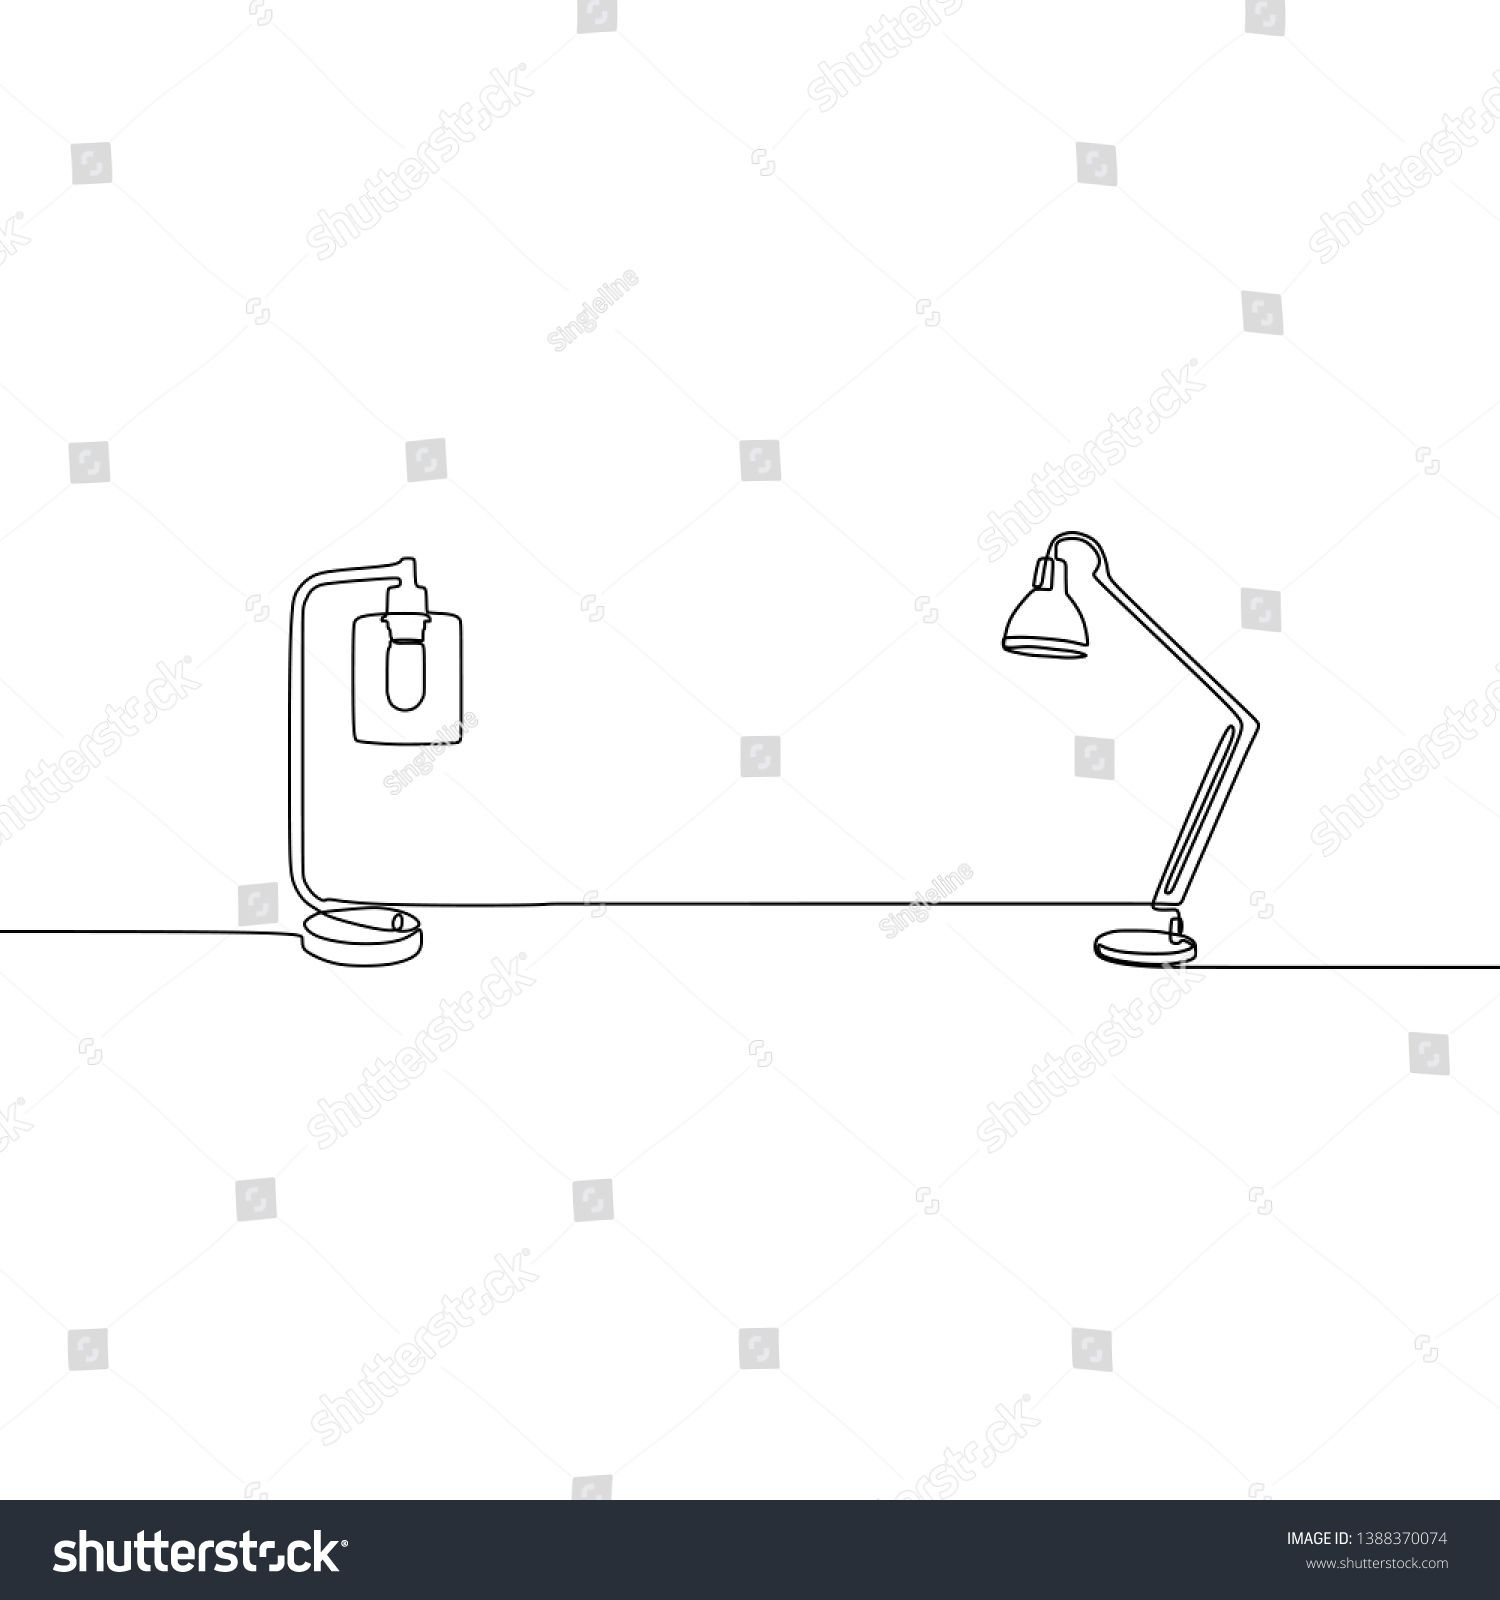 Desk Lamp And Table Lamp Continuous Line Lamp Vector Outline Set Of Lamp Icons For Web Design Isolated On White Backgrou In 2020 Continuous Line Web Design Continuity